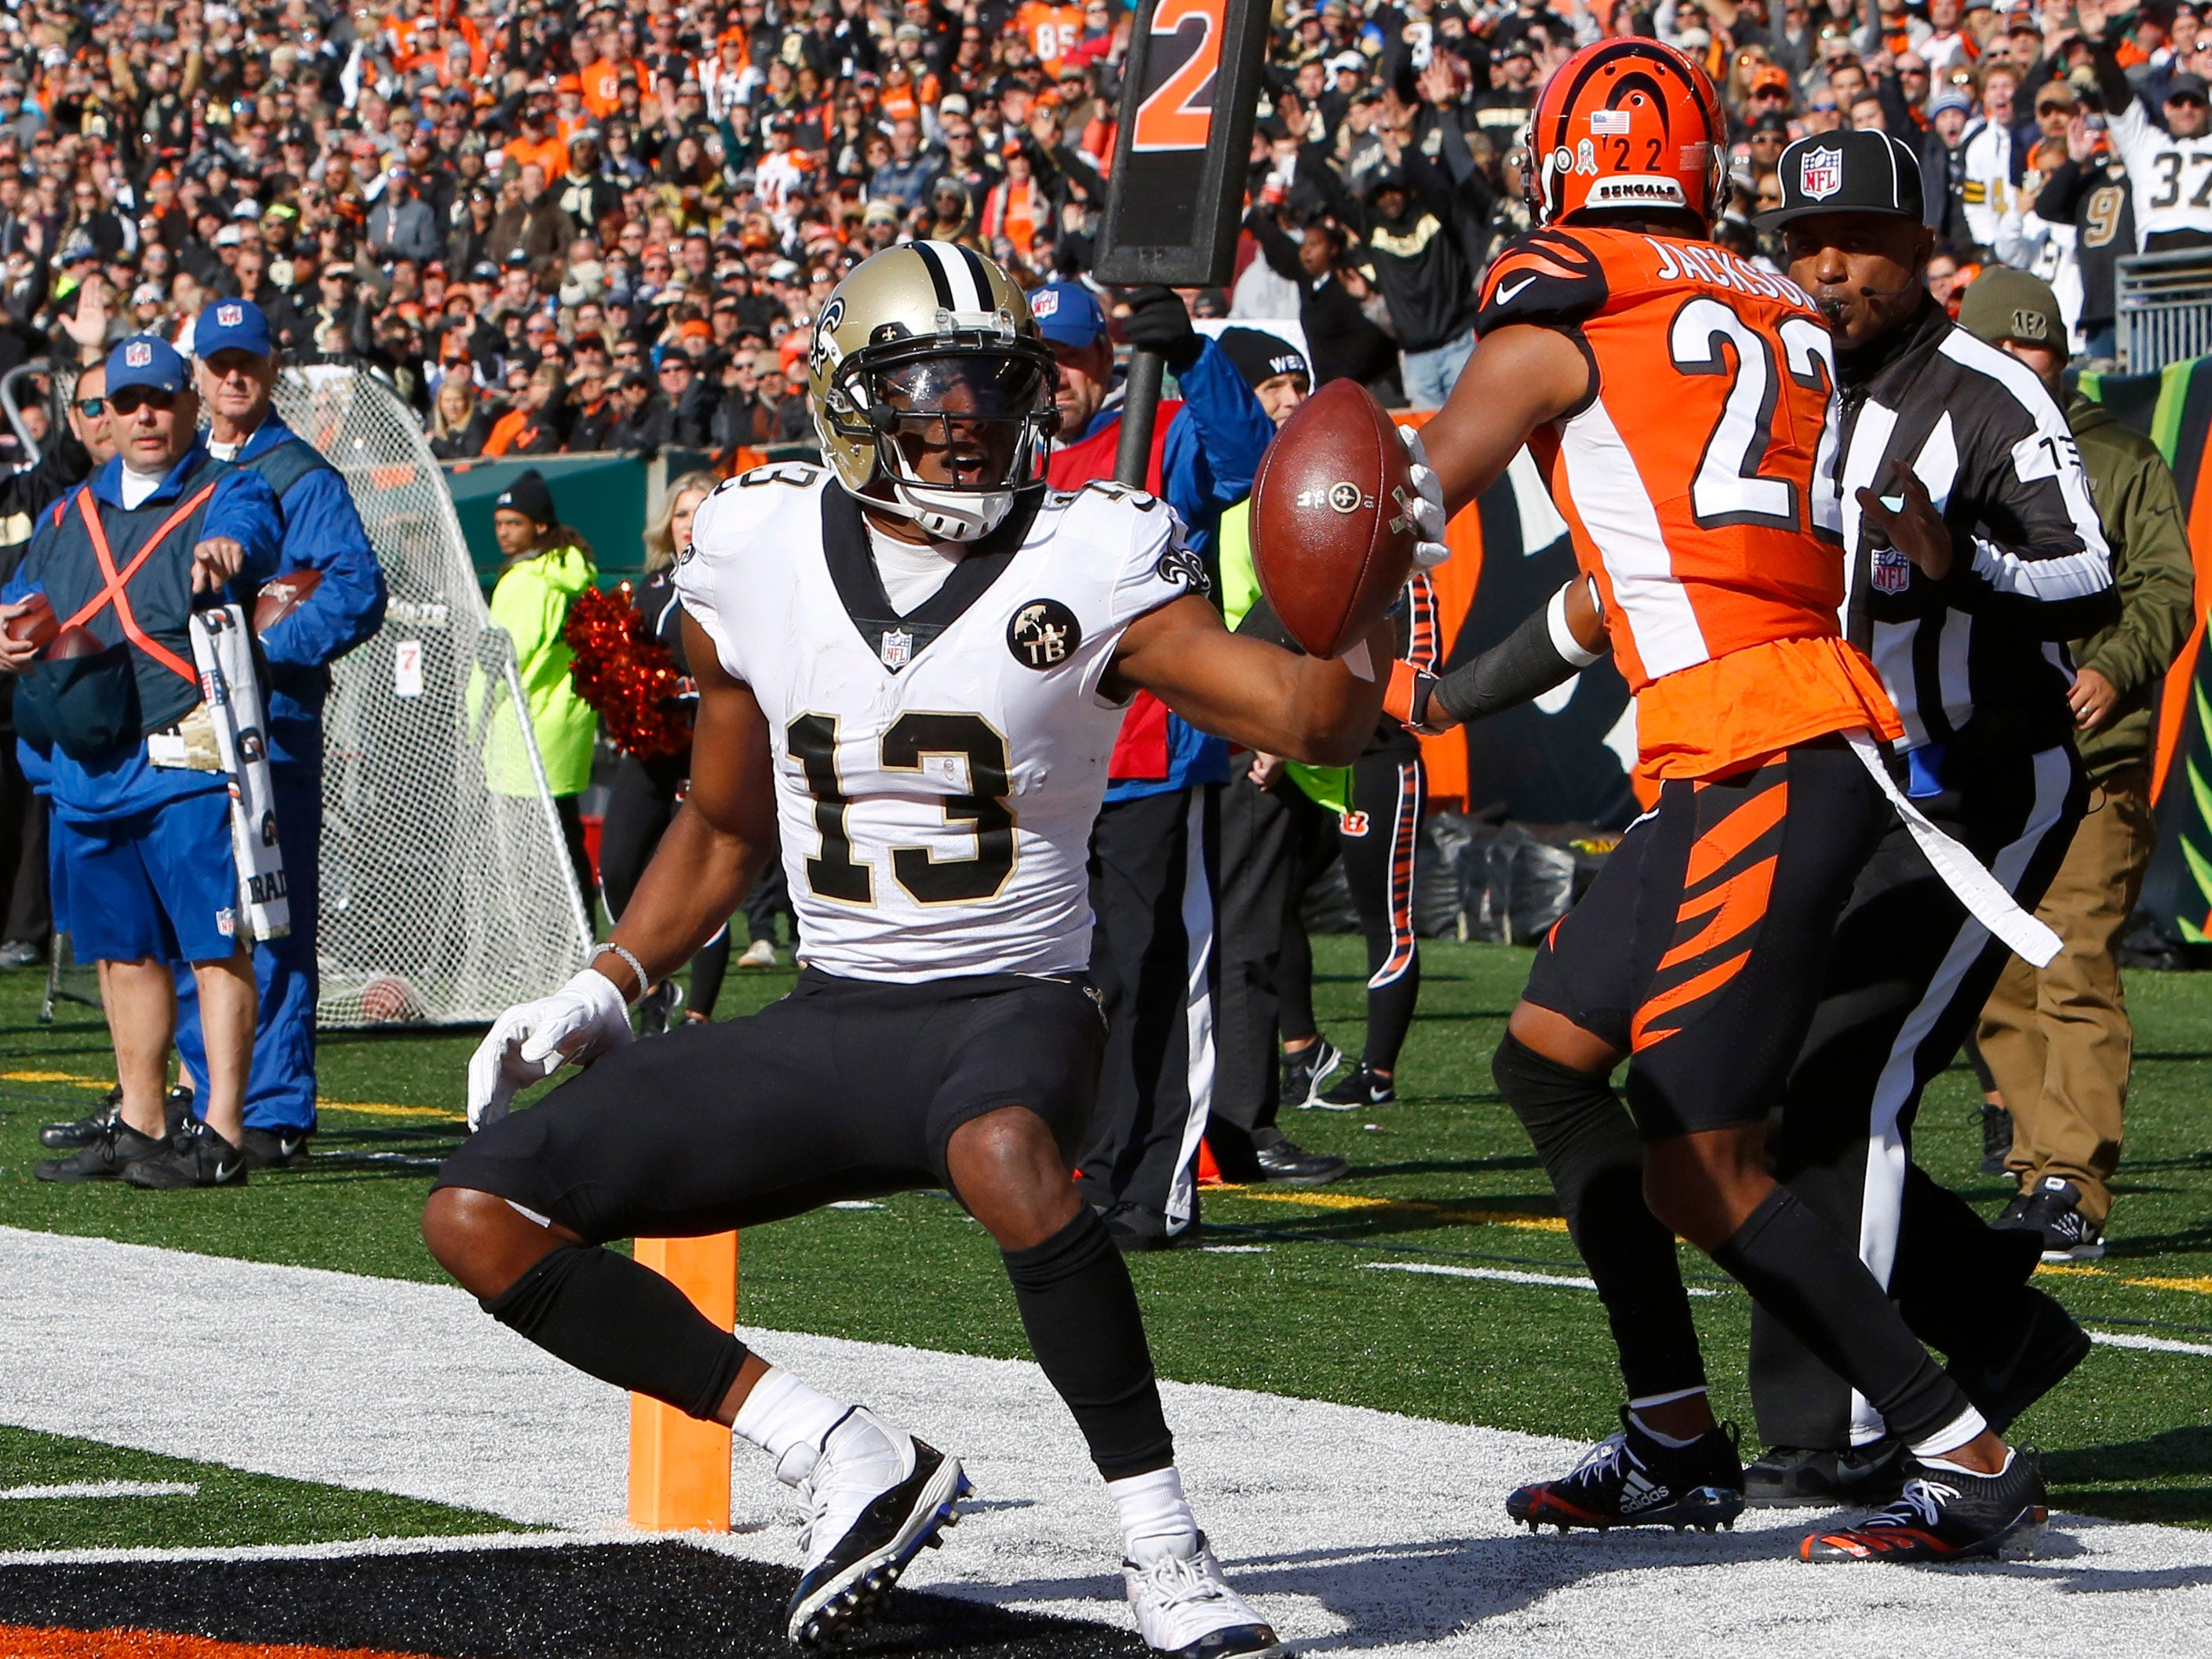 Saints wide receiver Michael Thomas scores a touchdown.